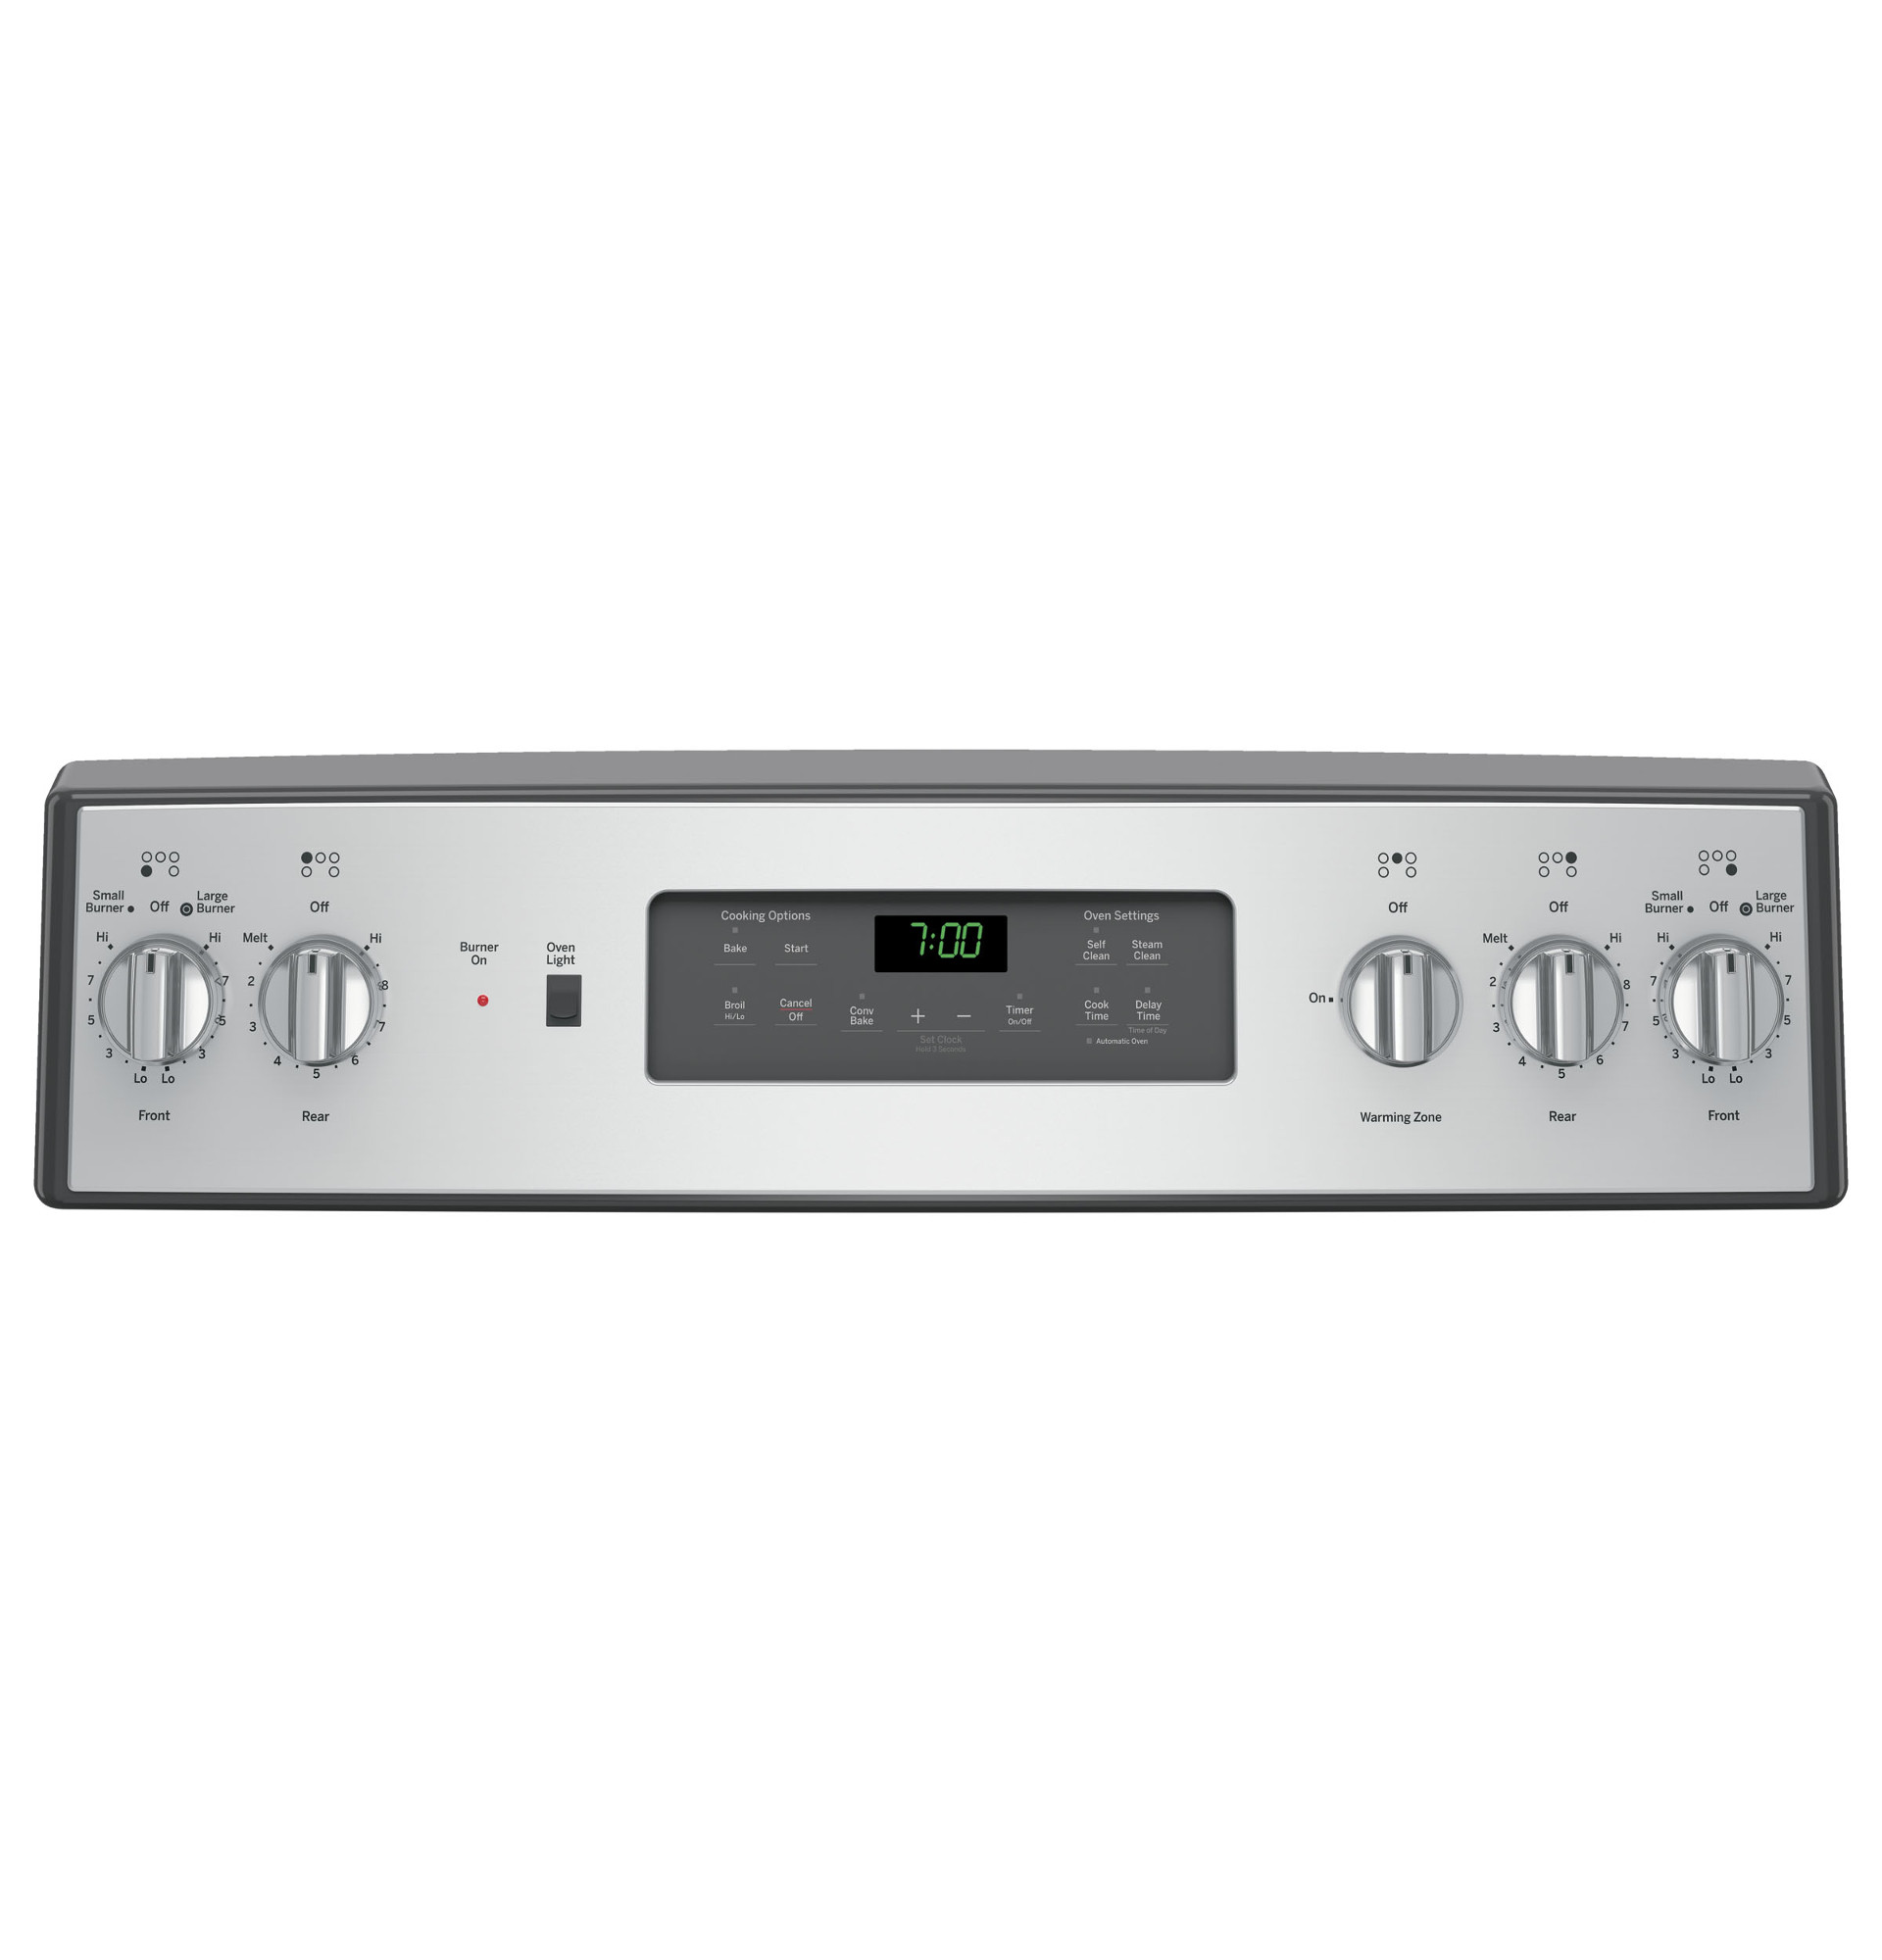 GE Appliances JB700SJSS 5.3 cu. ft. Freestanding Electric Convection Range - Stainless Steel